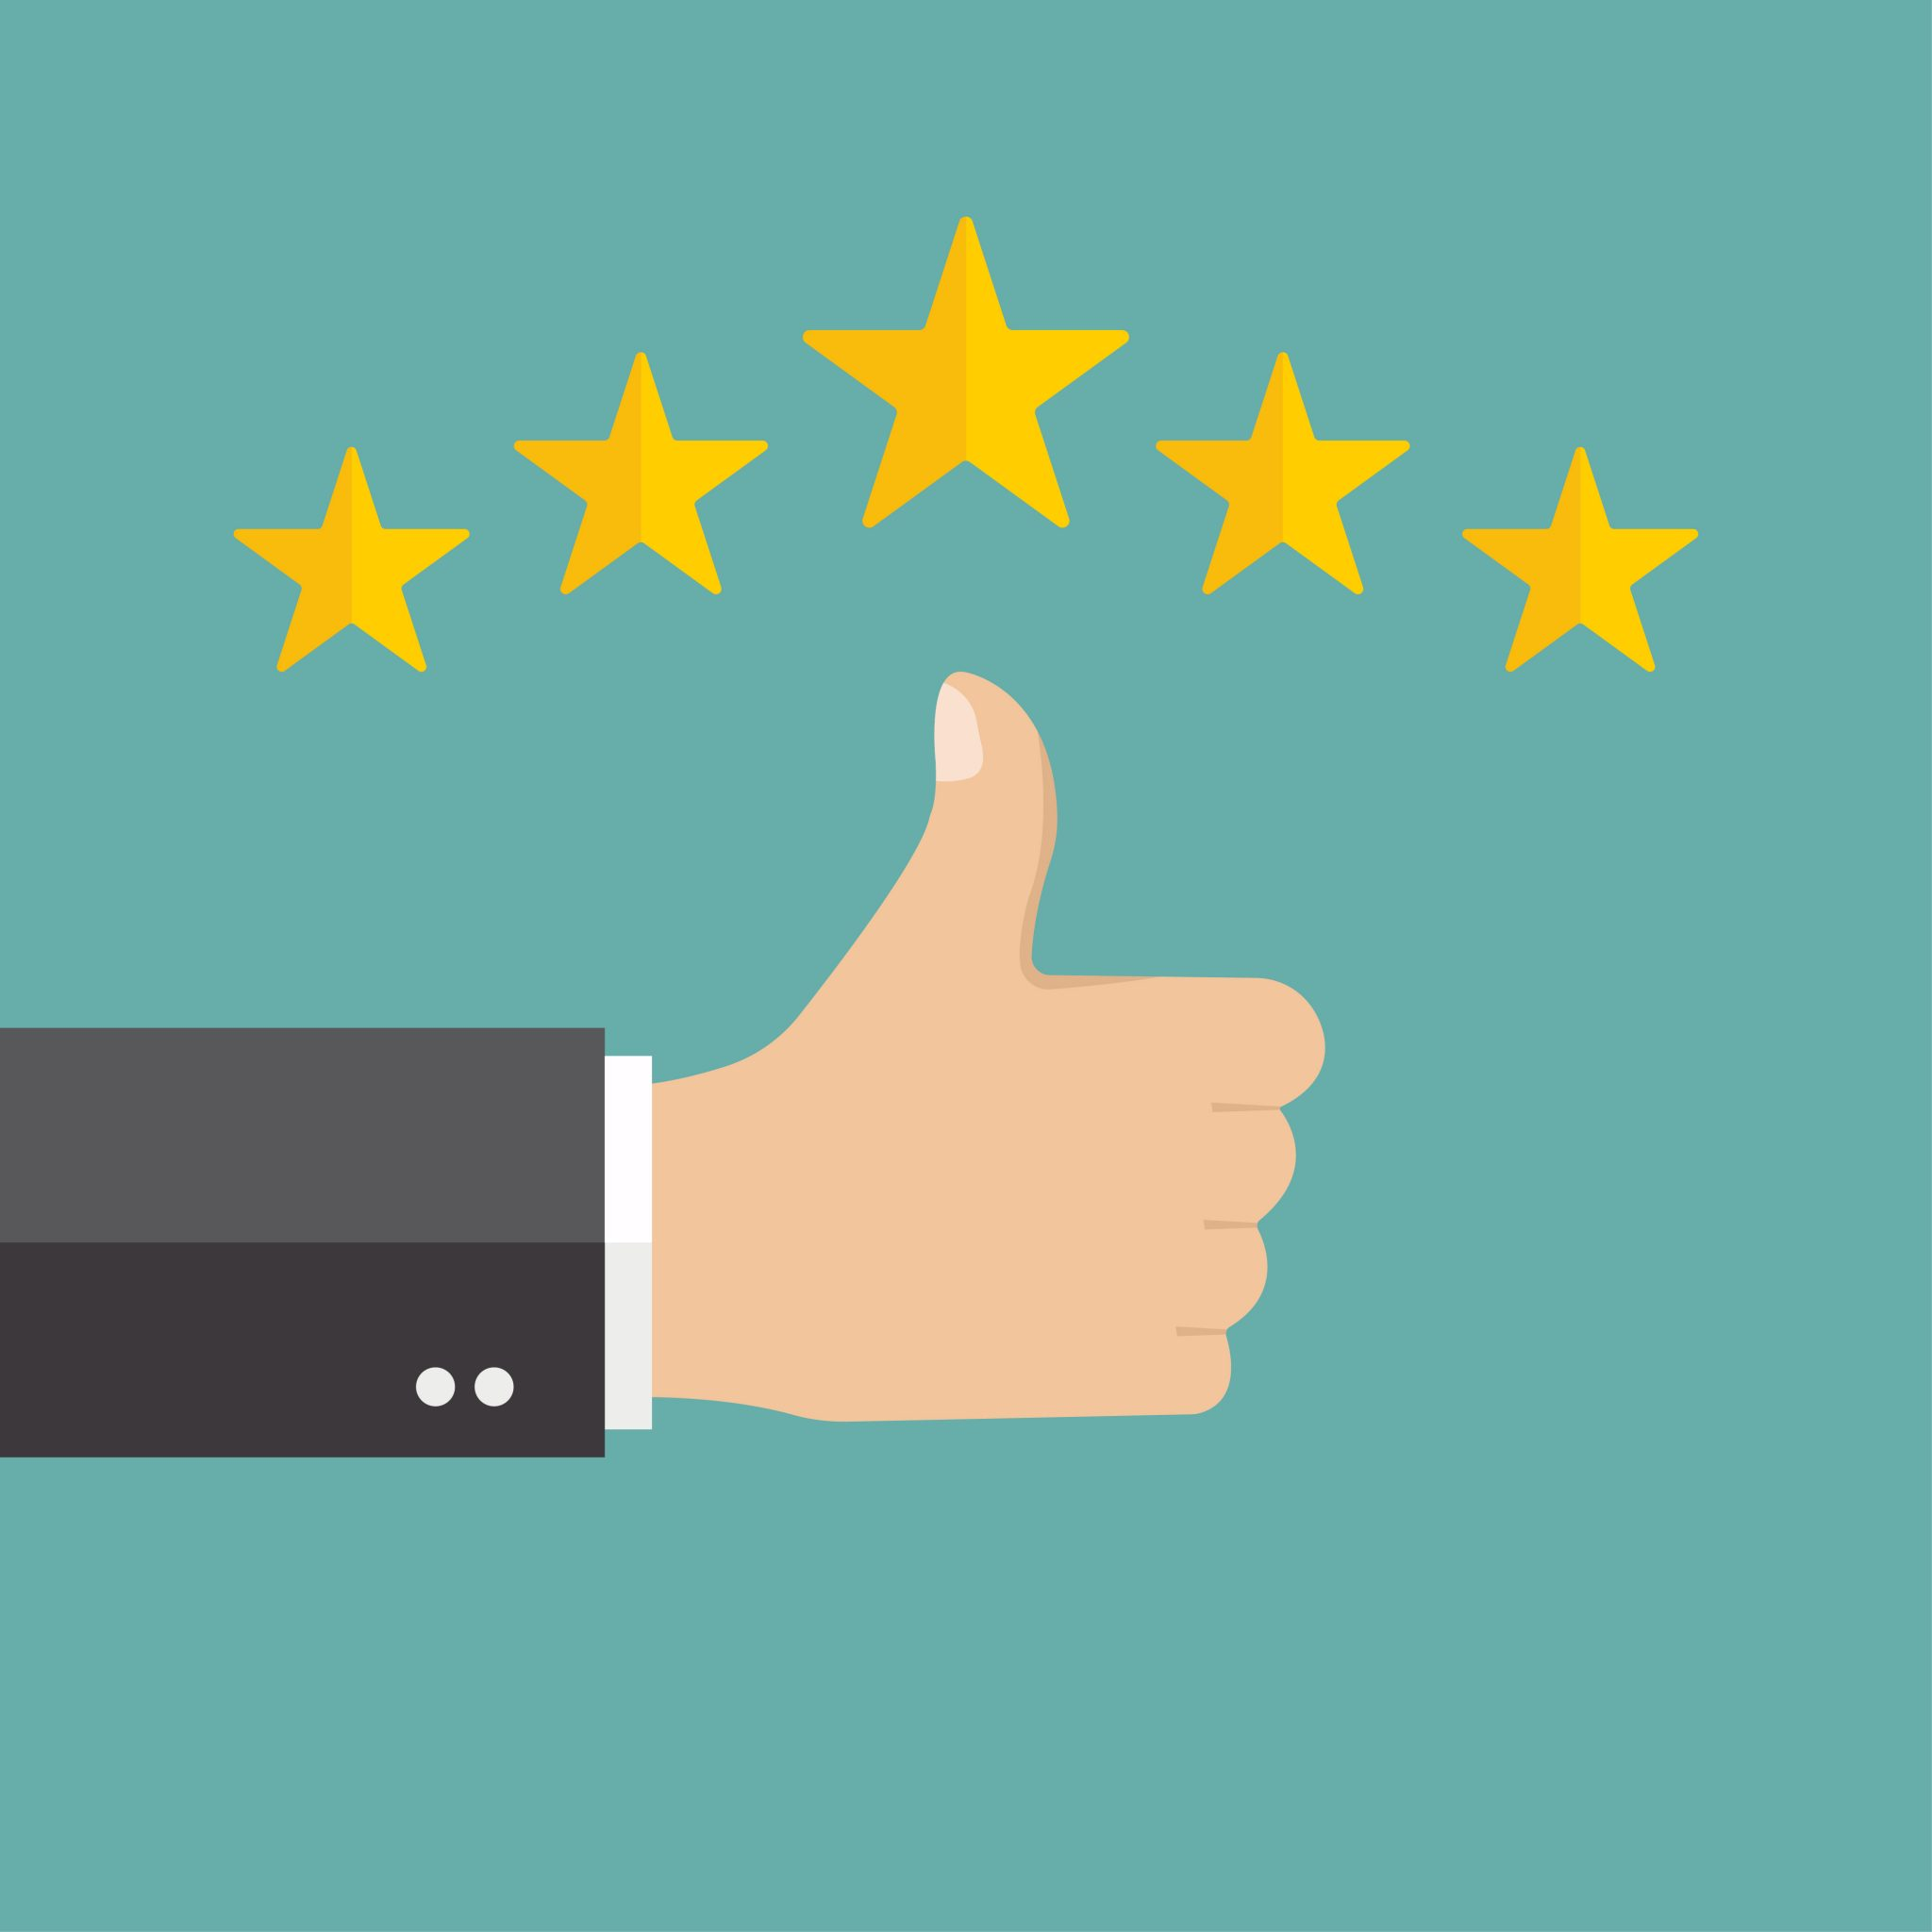 Star ratings are critically important for health plans